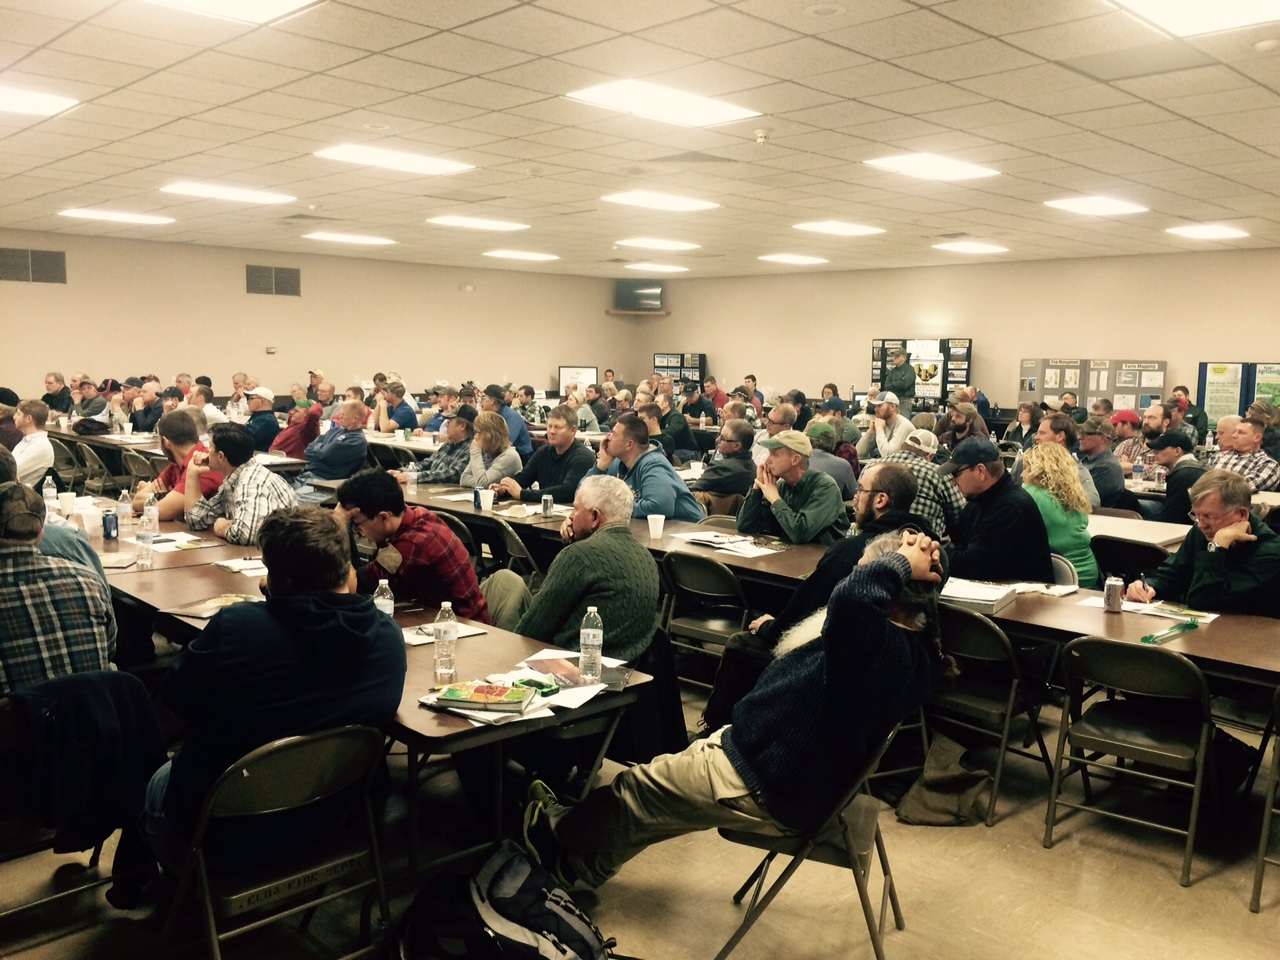 The annual meeting and soil health workshop had an excellent turnout of about 150 attendees.